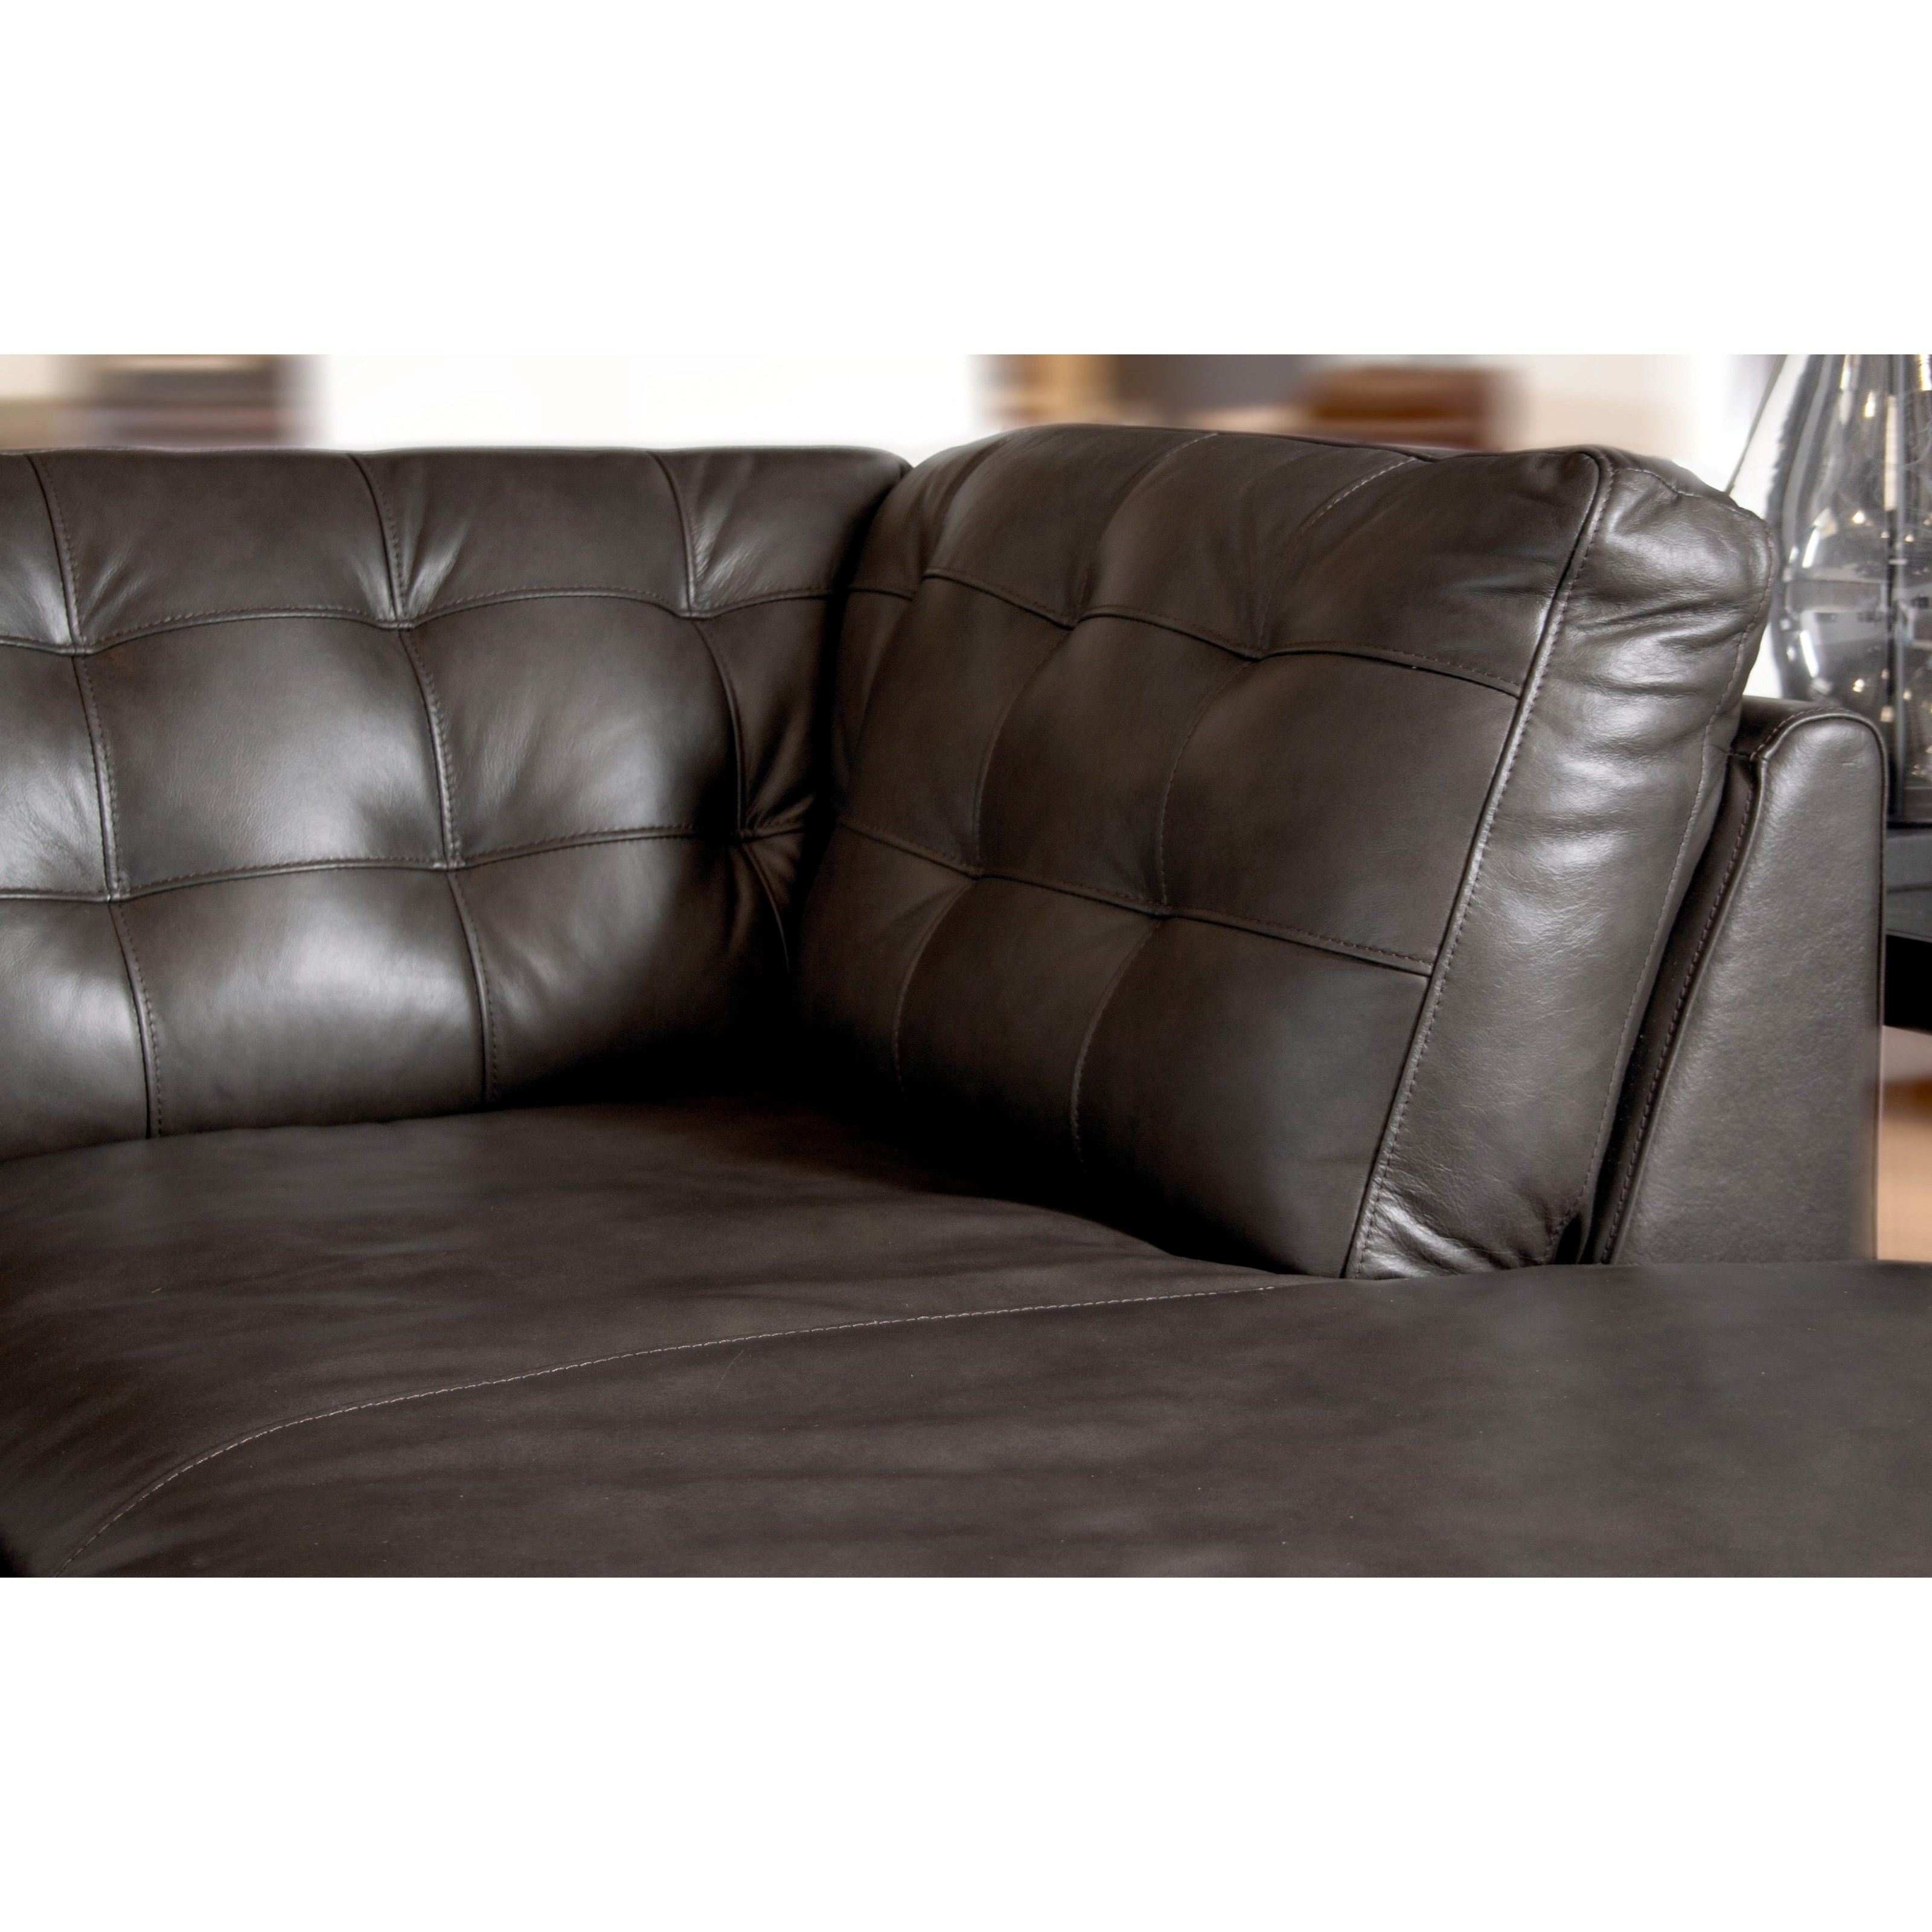 Bassett affinity 3 piece sectional with chaise becker for Bassett sectional sofa with chaise